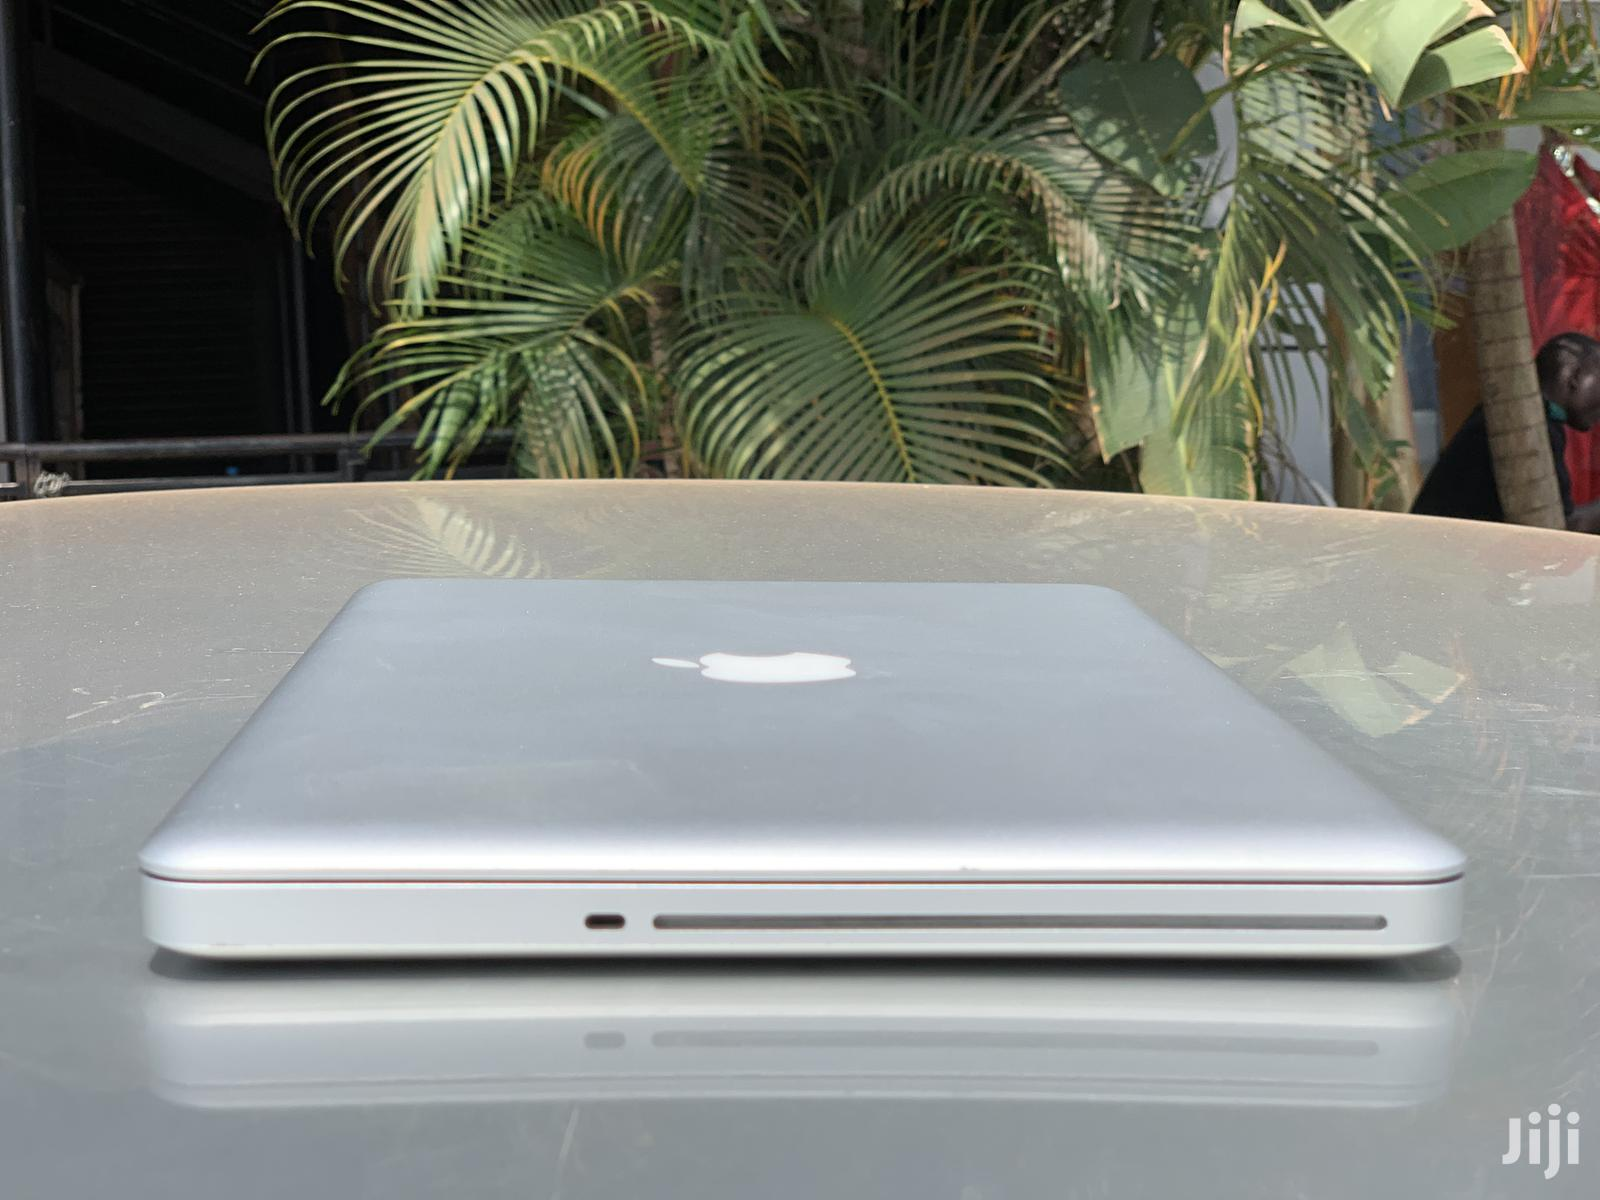 Laptop Apple MacBook Pro 8GB Intel Core I5 HDD 500GB | Laptops & Computers for sale in Kampala, Central Region, Uganda